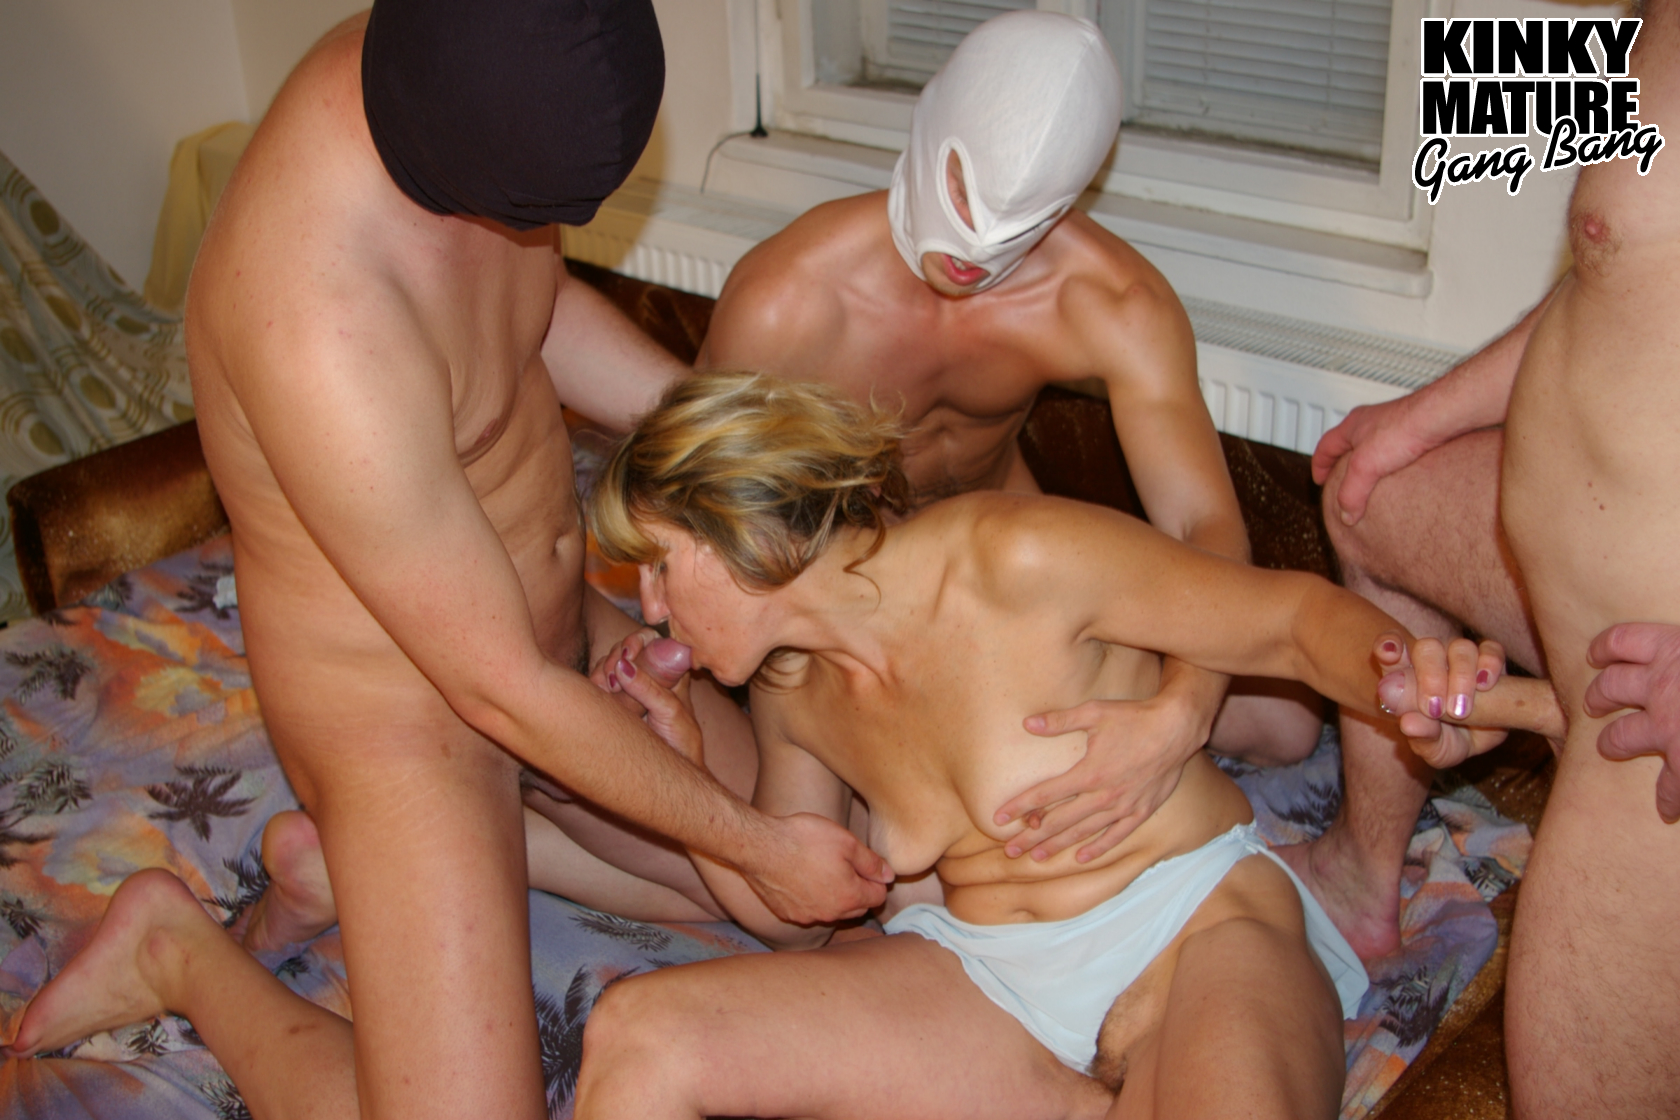 Suggest you Free amateur gangbang movies